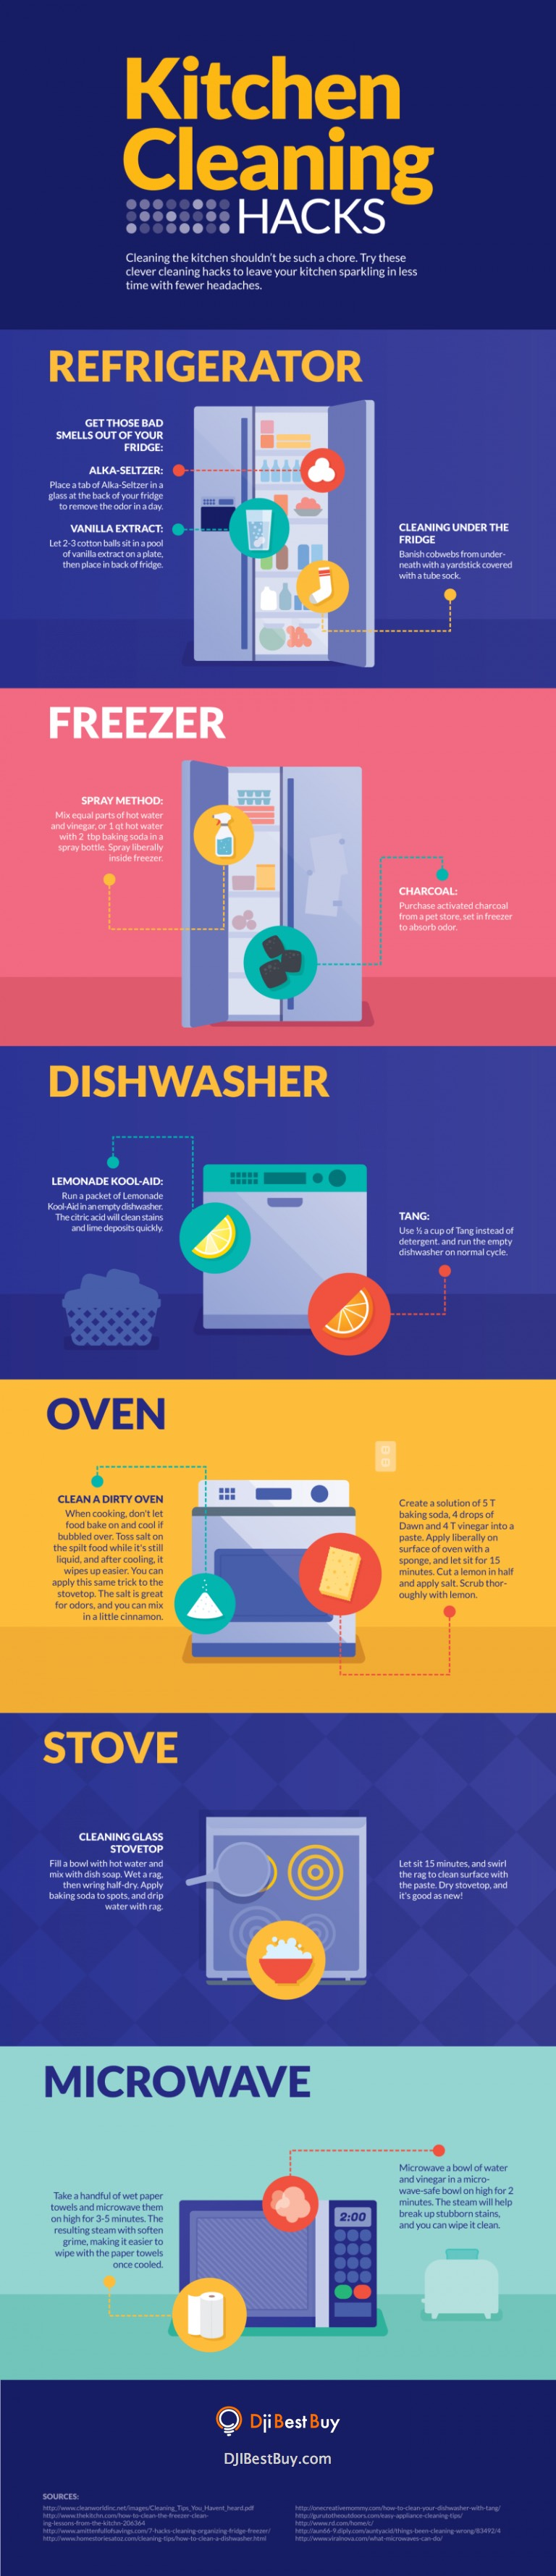 Problems in cleaning appliances in the kitchen